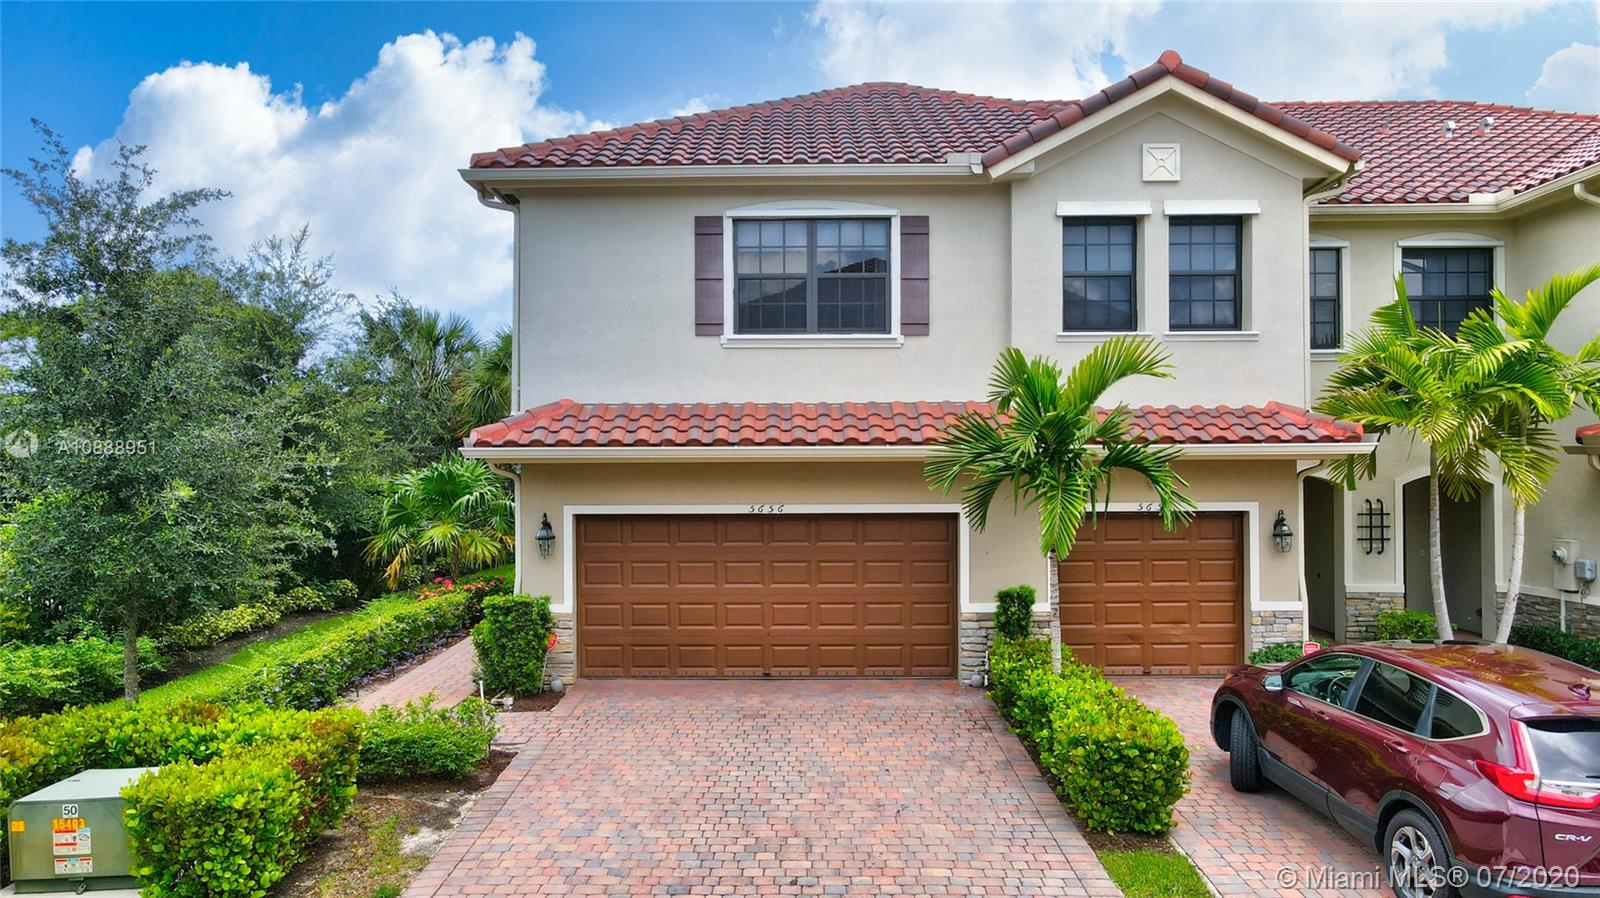 Beautifully maintained open floor plan townhome in Tamarac. One owner, built in 2016. With hand made barn doors, quartz counter-tops, wood finishing throughout, not one detail has been missed.  This rare corner unit has a large master bedroom  with large walk in closet and a master bath with dual sinks and walk in shower.  Each window is finished with drapes and fitted blinds. Half bath downstairs for guests. 2 car garage, extra parking, and a private back with paved patio and room for a grill leading to a huge grass field big enough for the kids to play and the dogs to run.  Enjoy the community pool and children's playground.  Convenient to all major highways and shopping.  Don't miss this one, its the one you are waiting for.